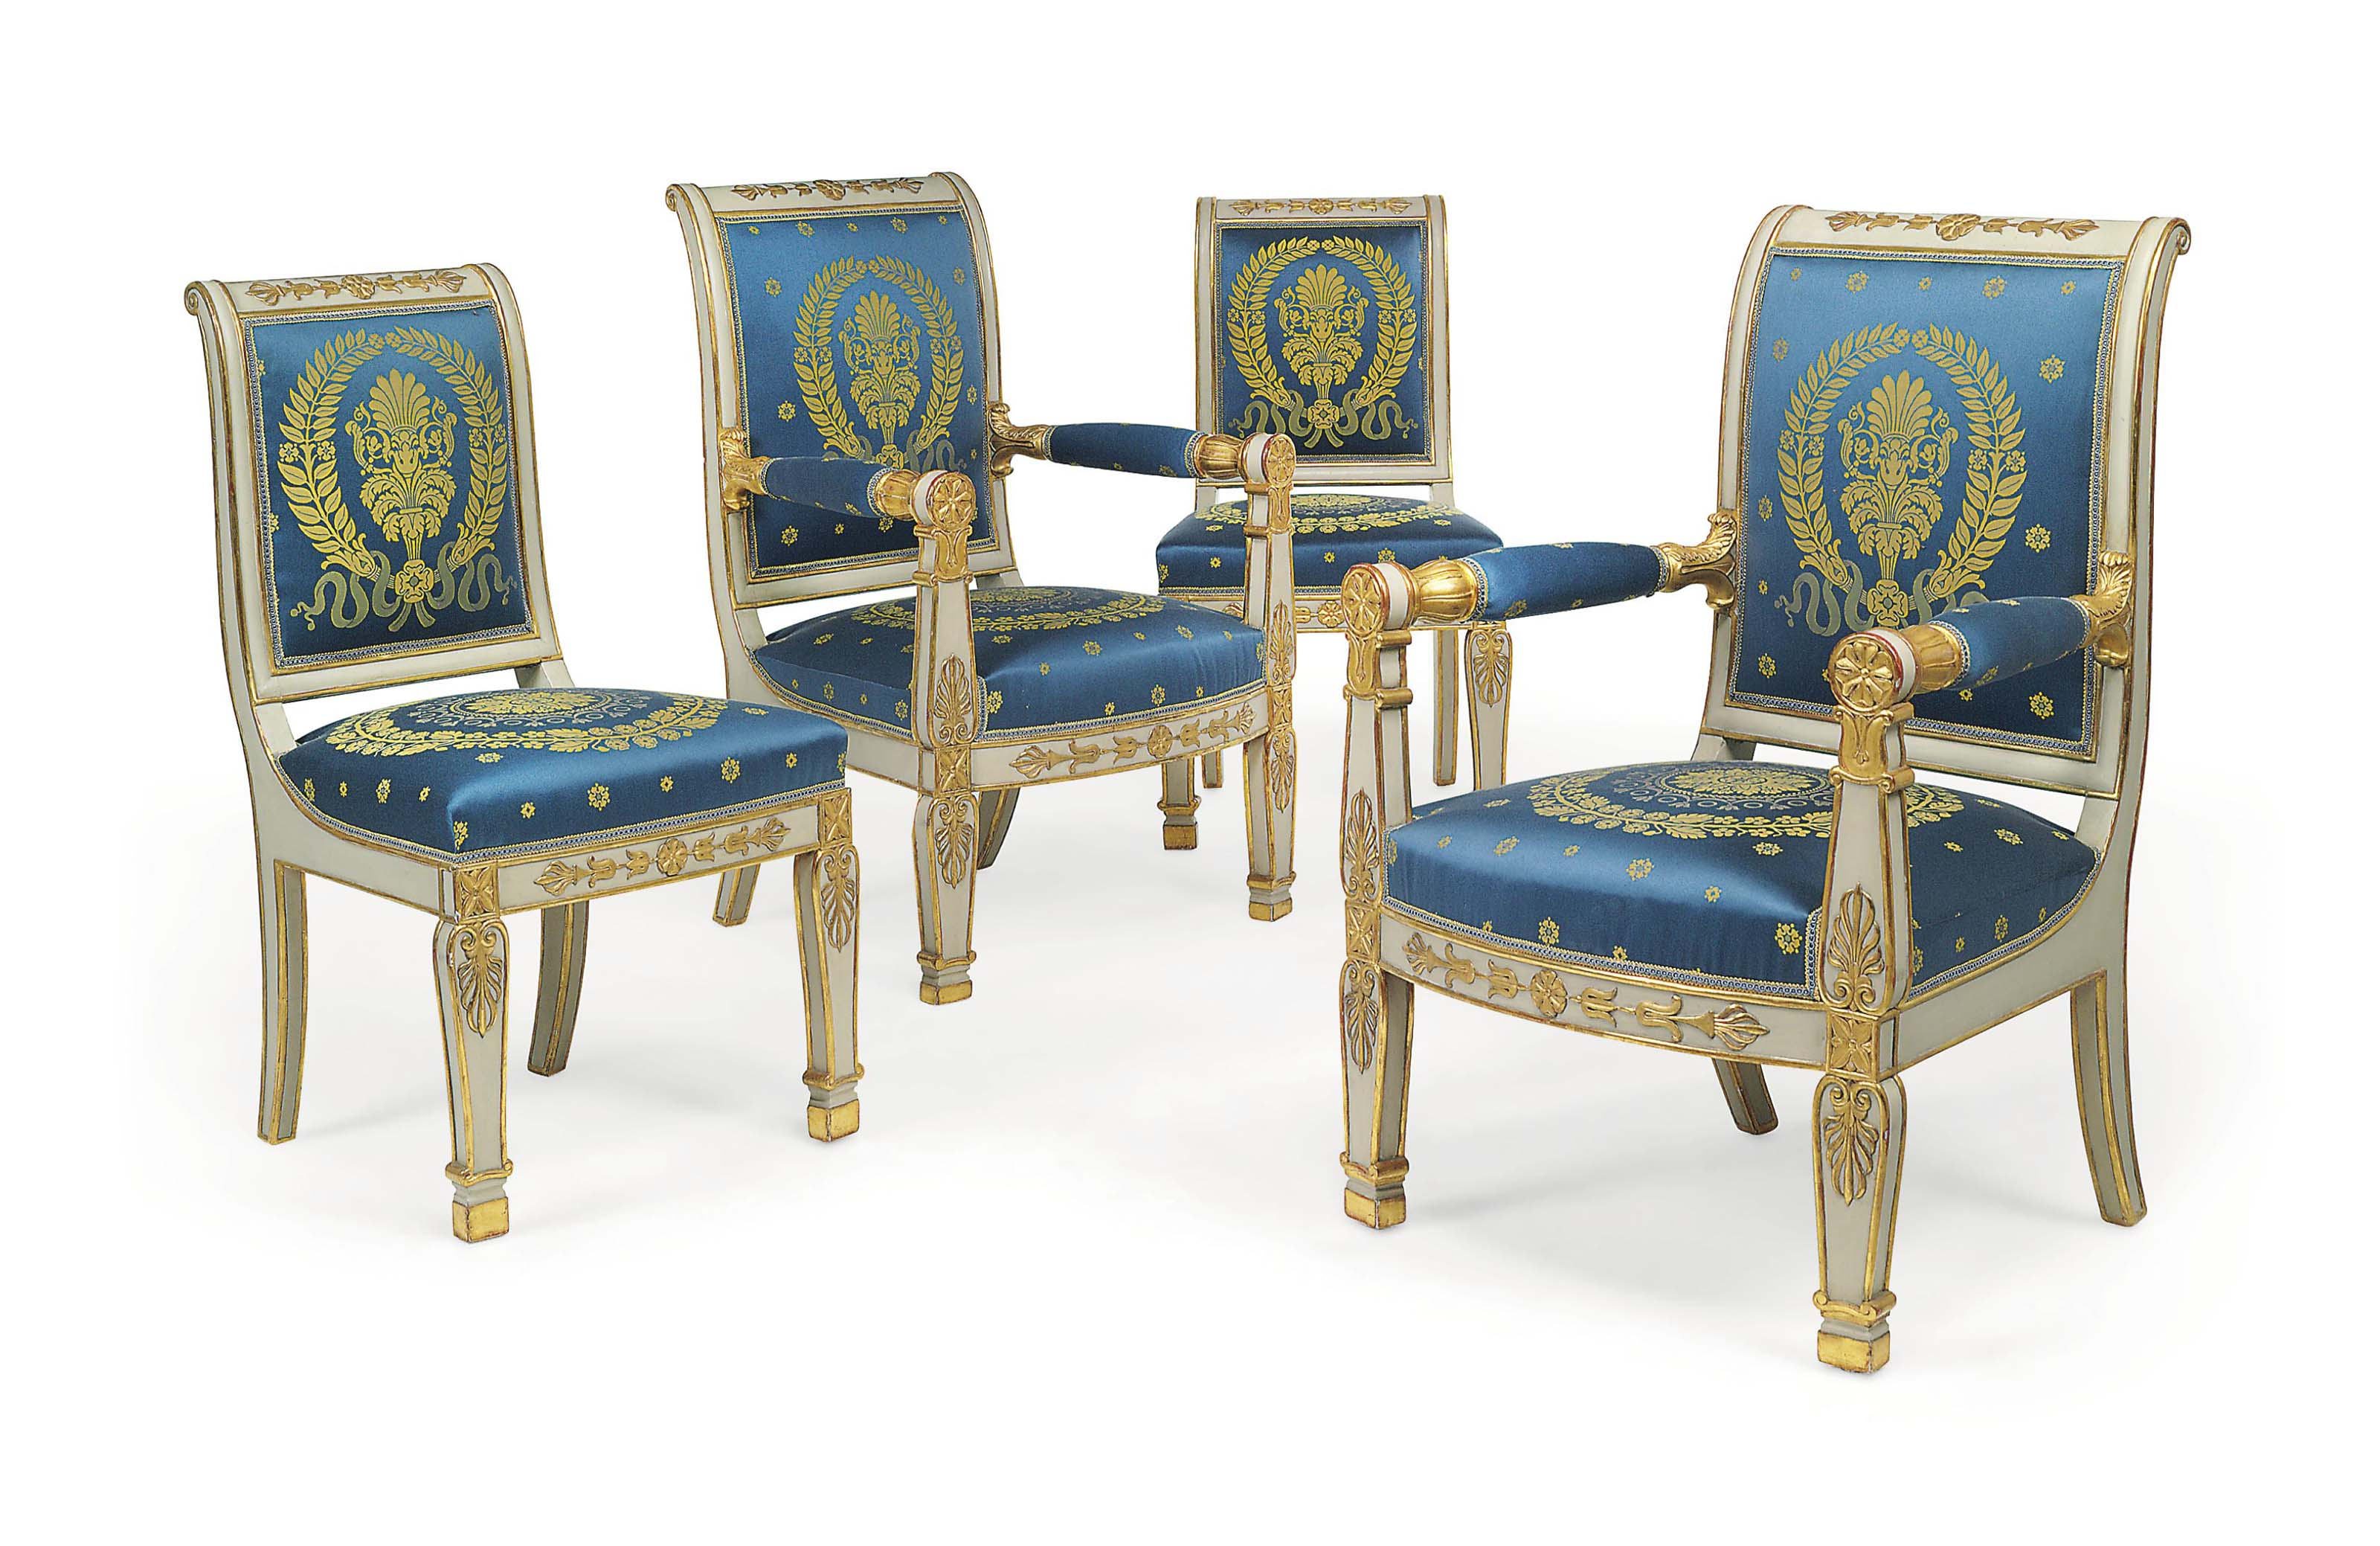 A PAIR OF LOUIS PHILIPPE CREAM-PAINTED AND PARCEL-GILT FAUTEUILS AND PAIR OF CHAISES EN SUITE